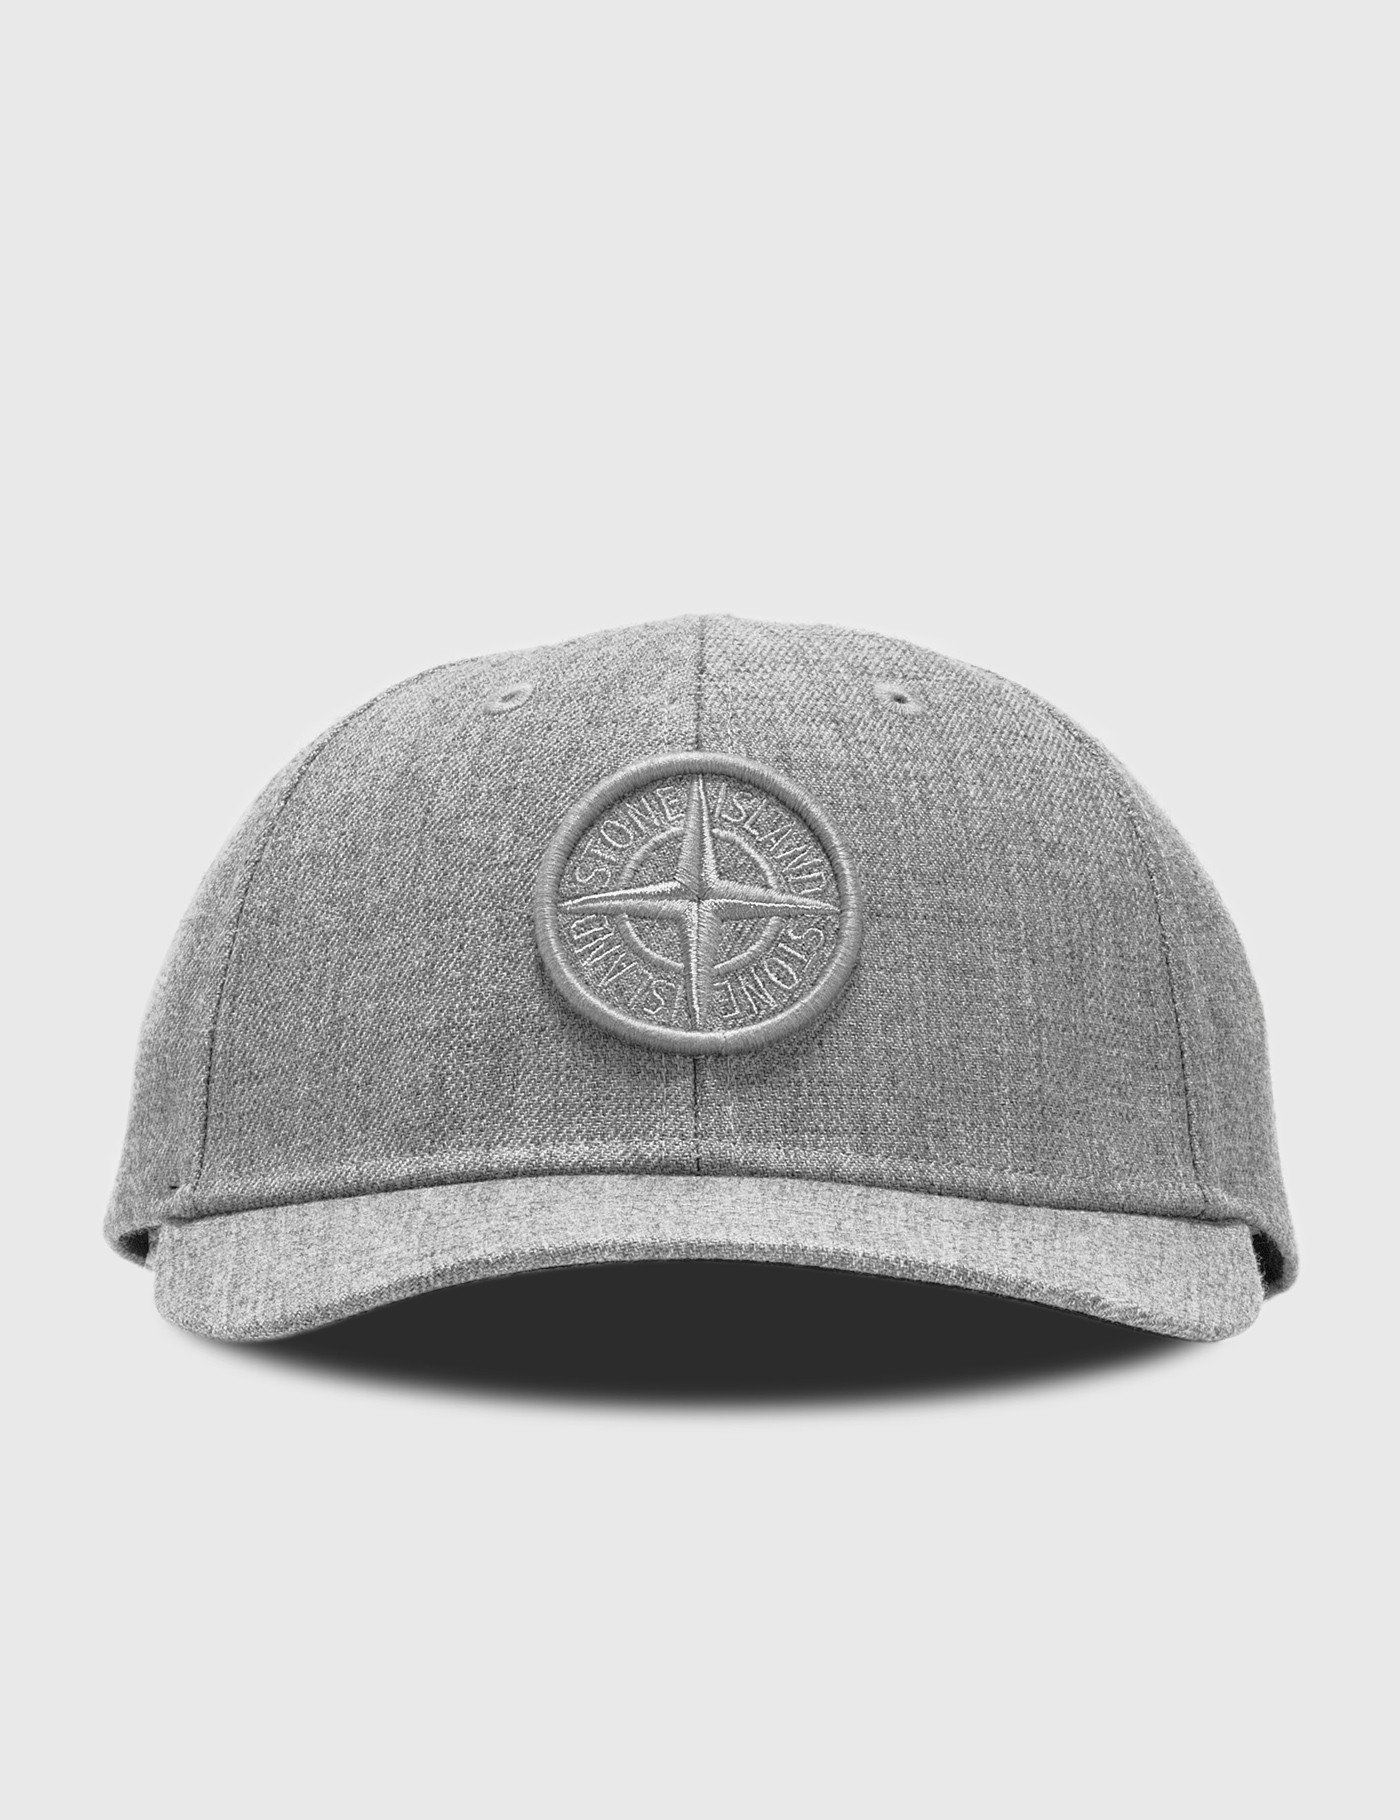 Embroidered Compass Logo Cap